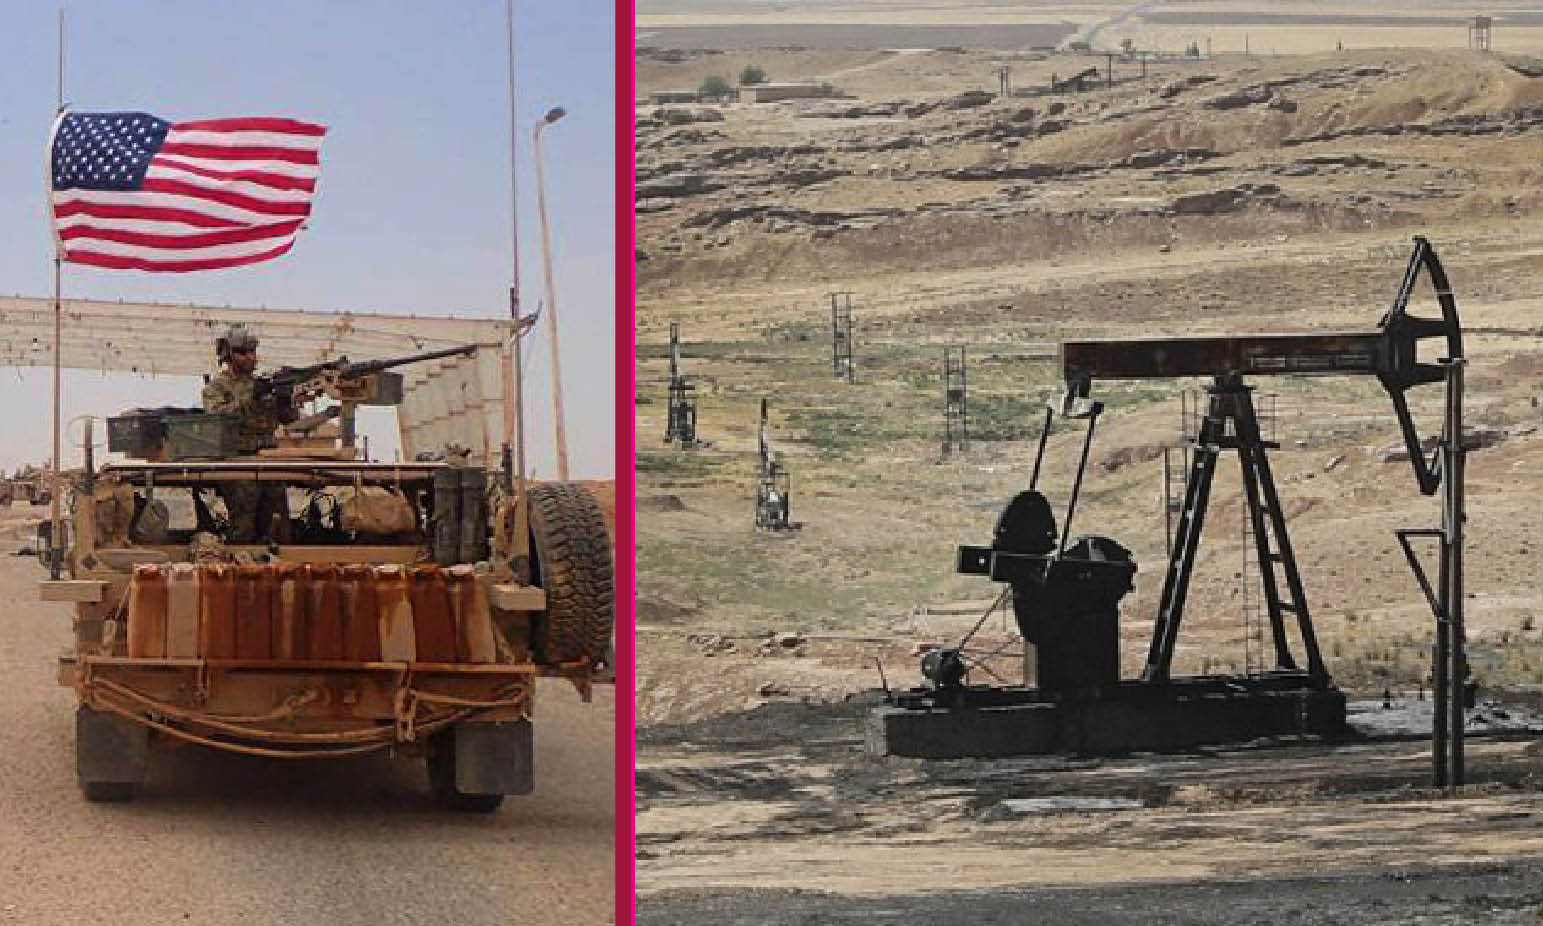 SYRIA: THE US CRIMINAL SCHEME FOR SMUGGLING OIL